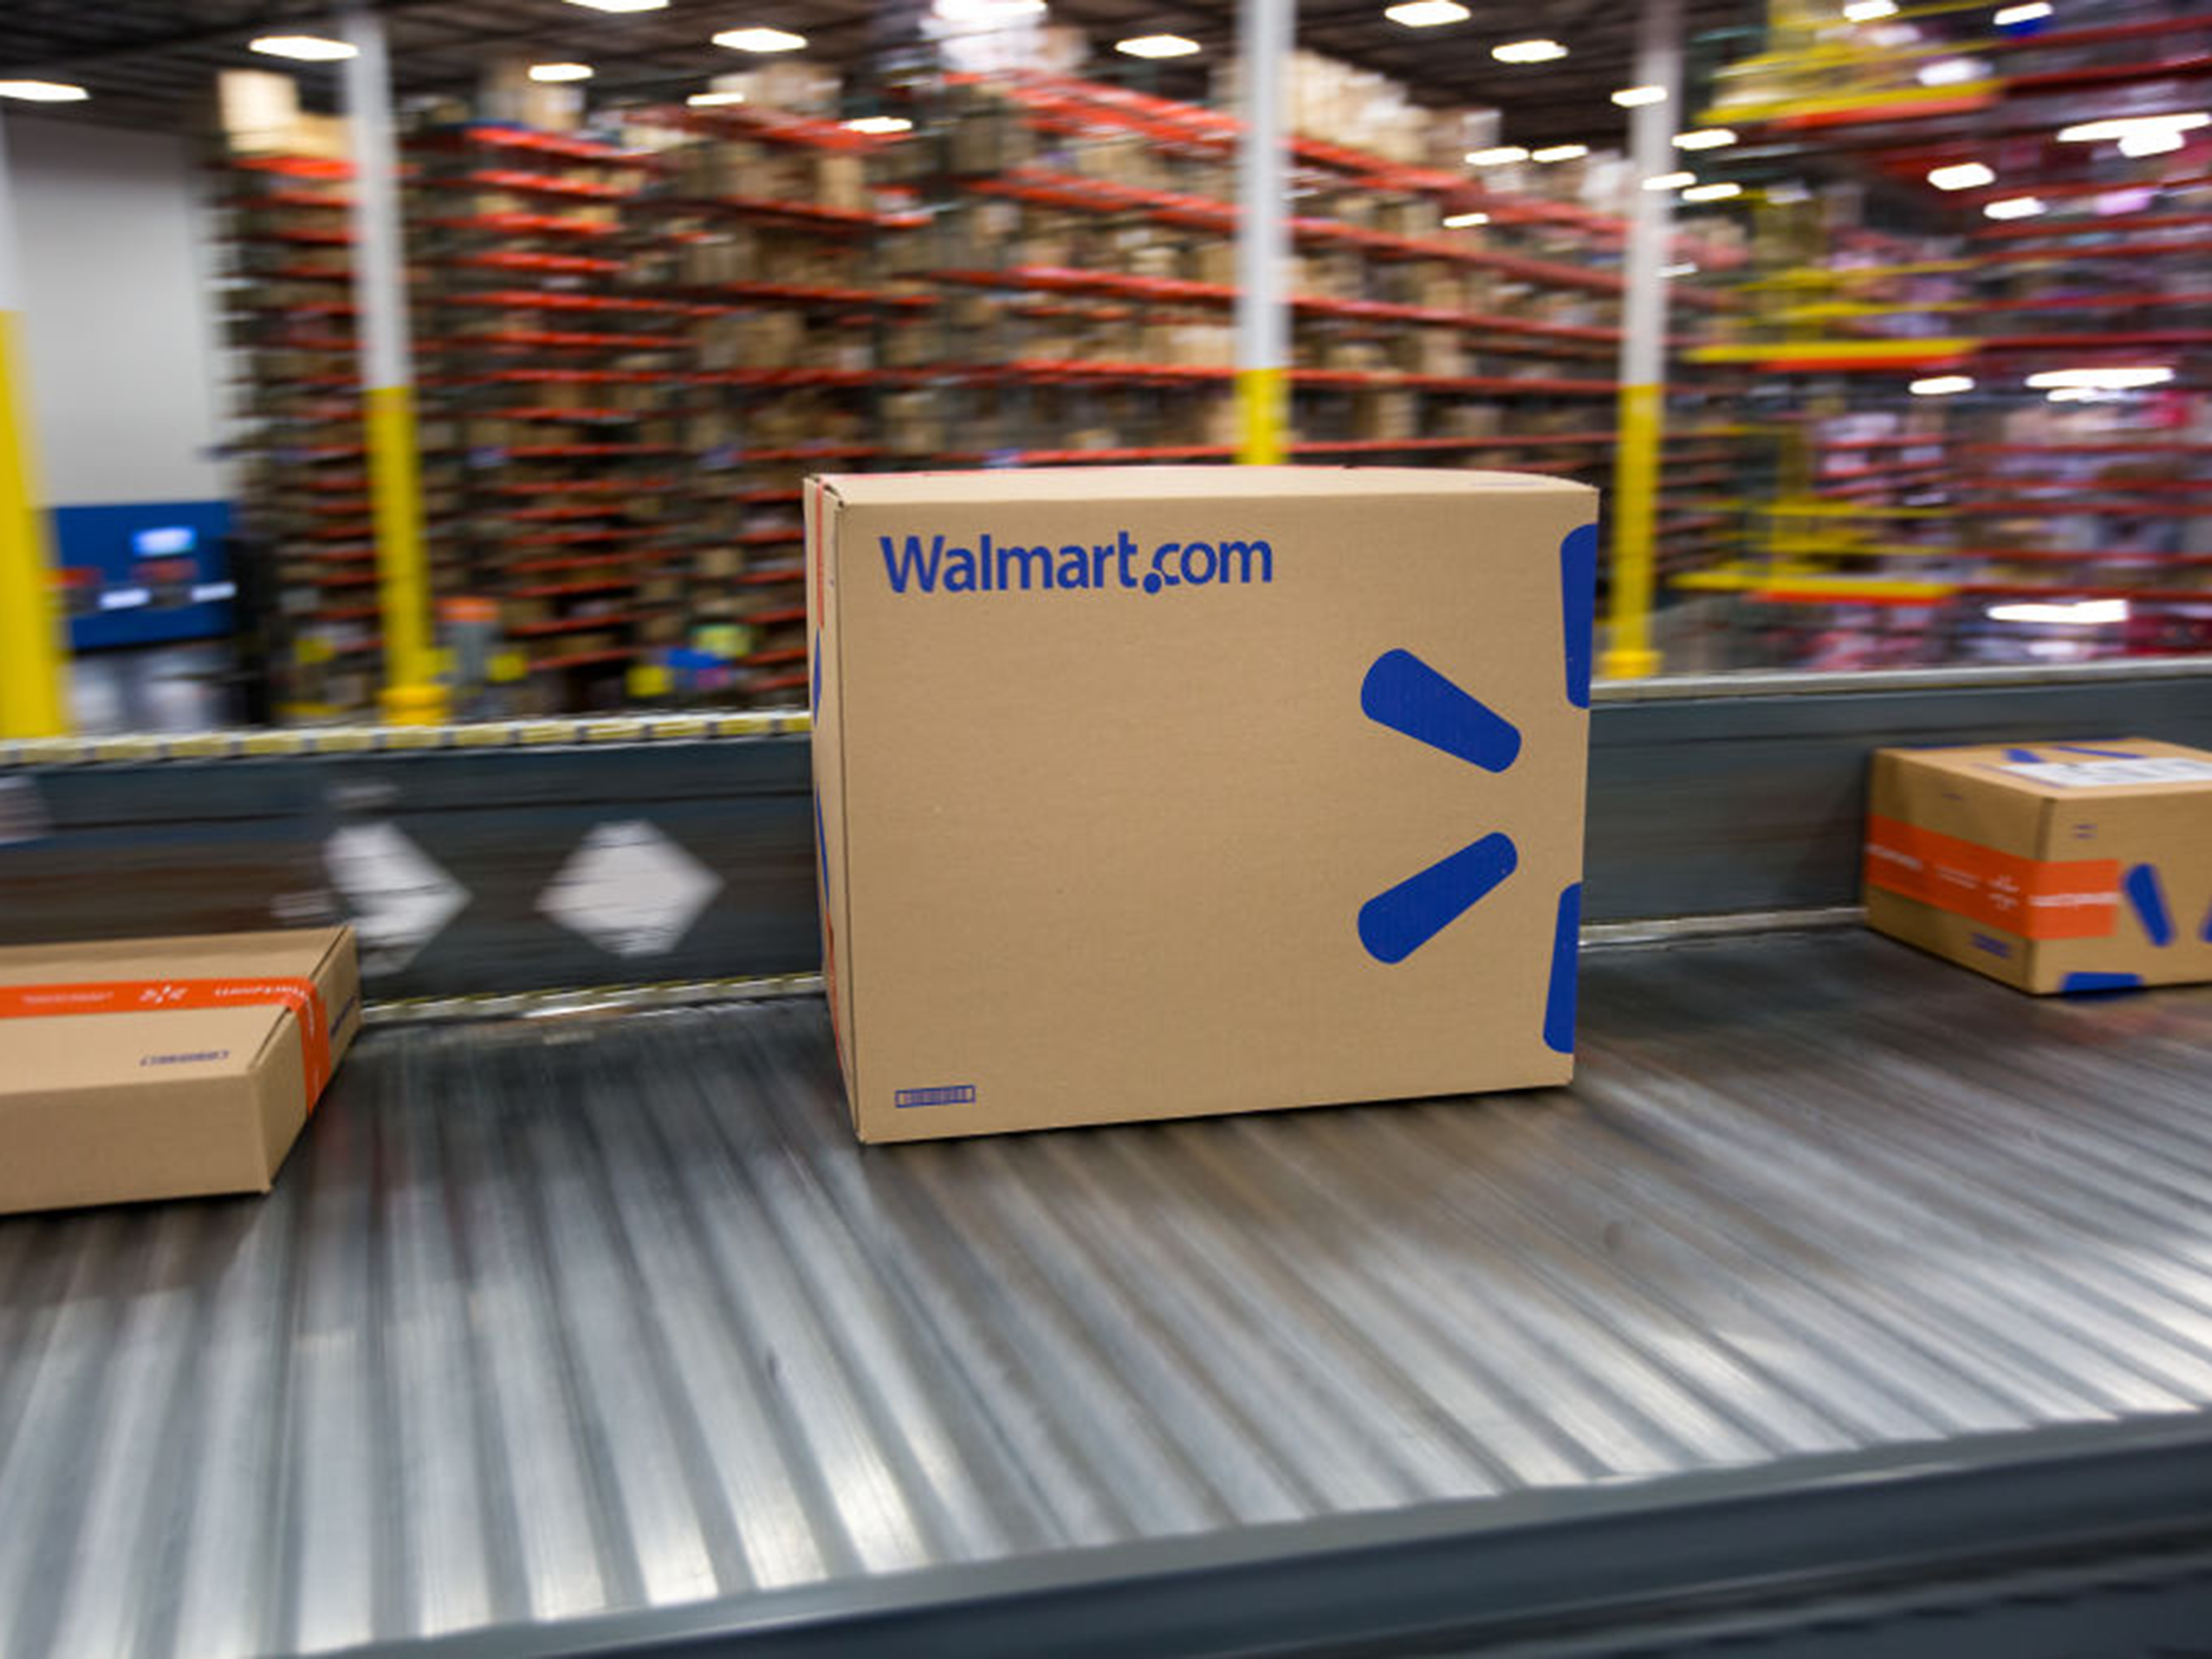 Walmart Warehouse Robots Are Latest Tool in Battle With Amazon